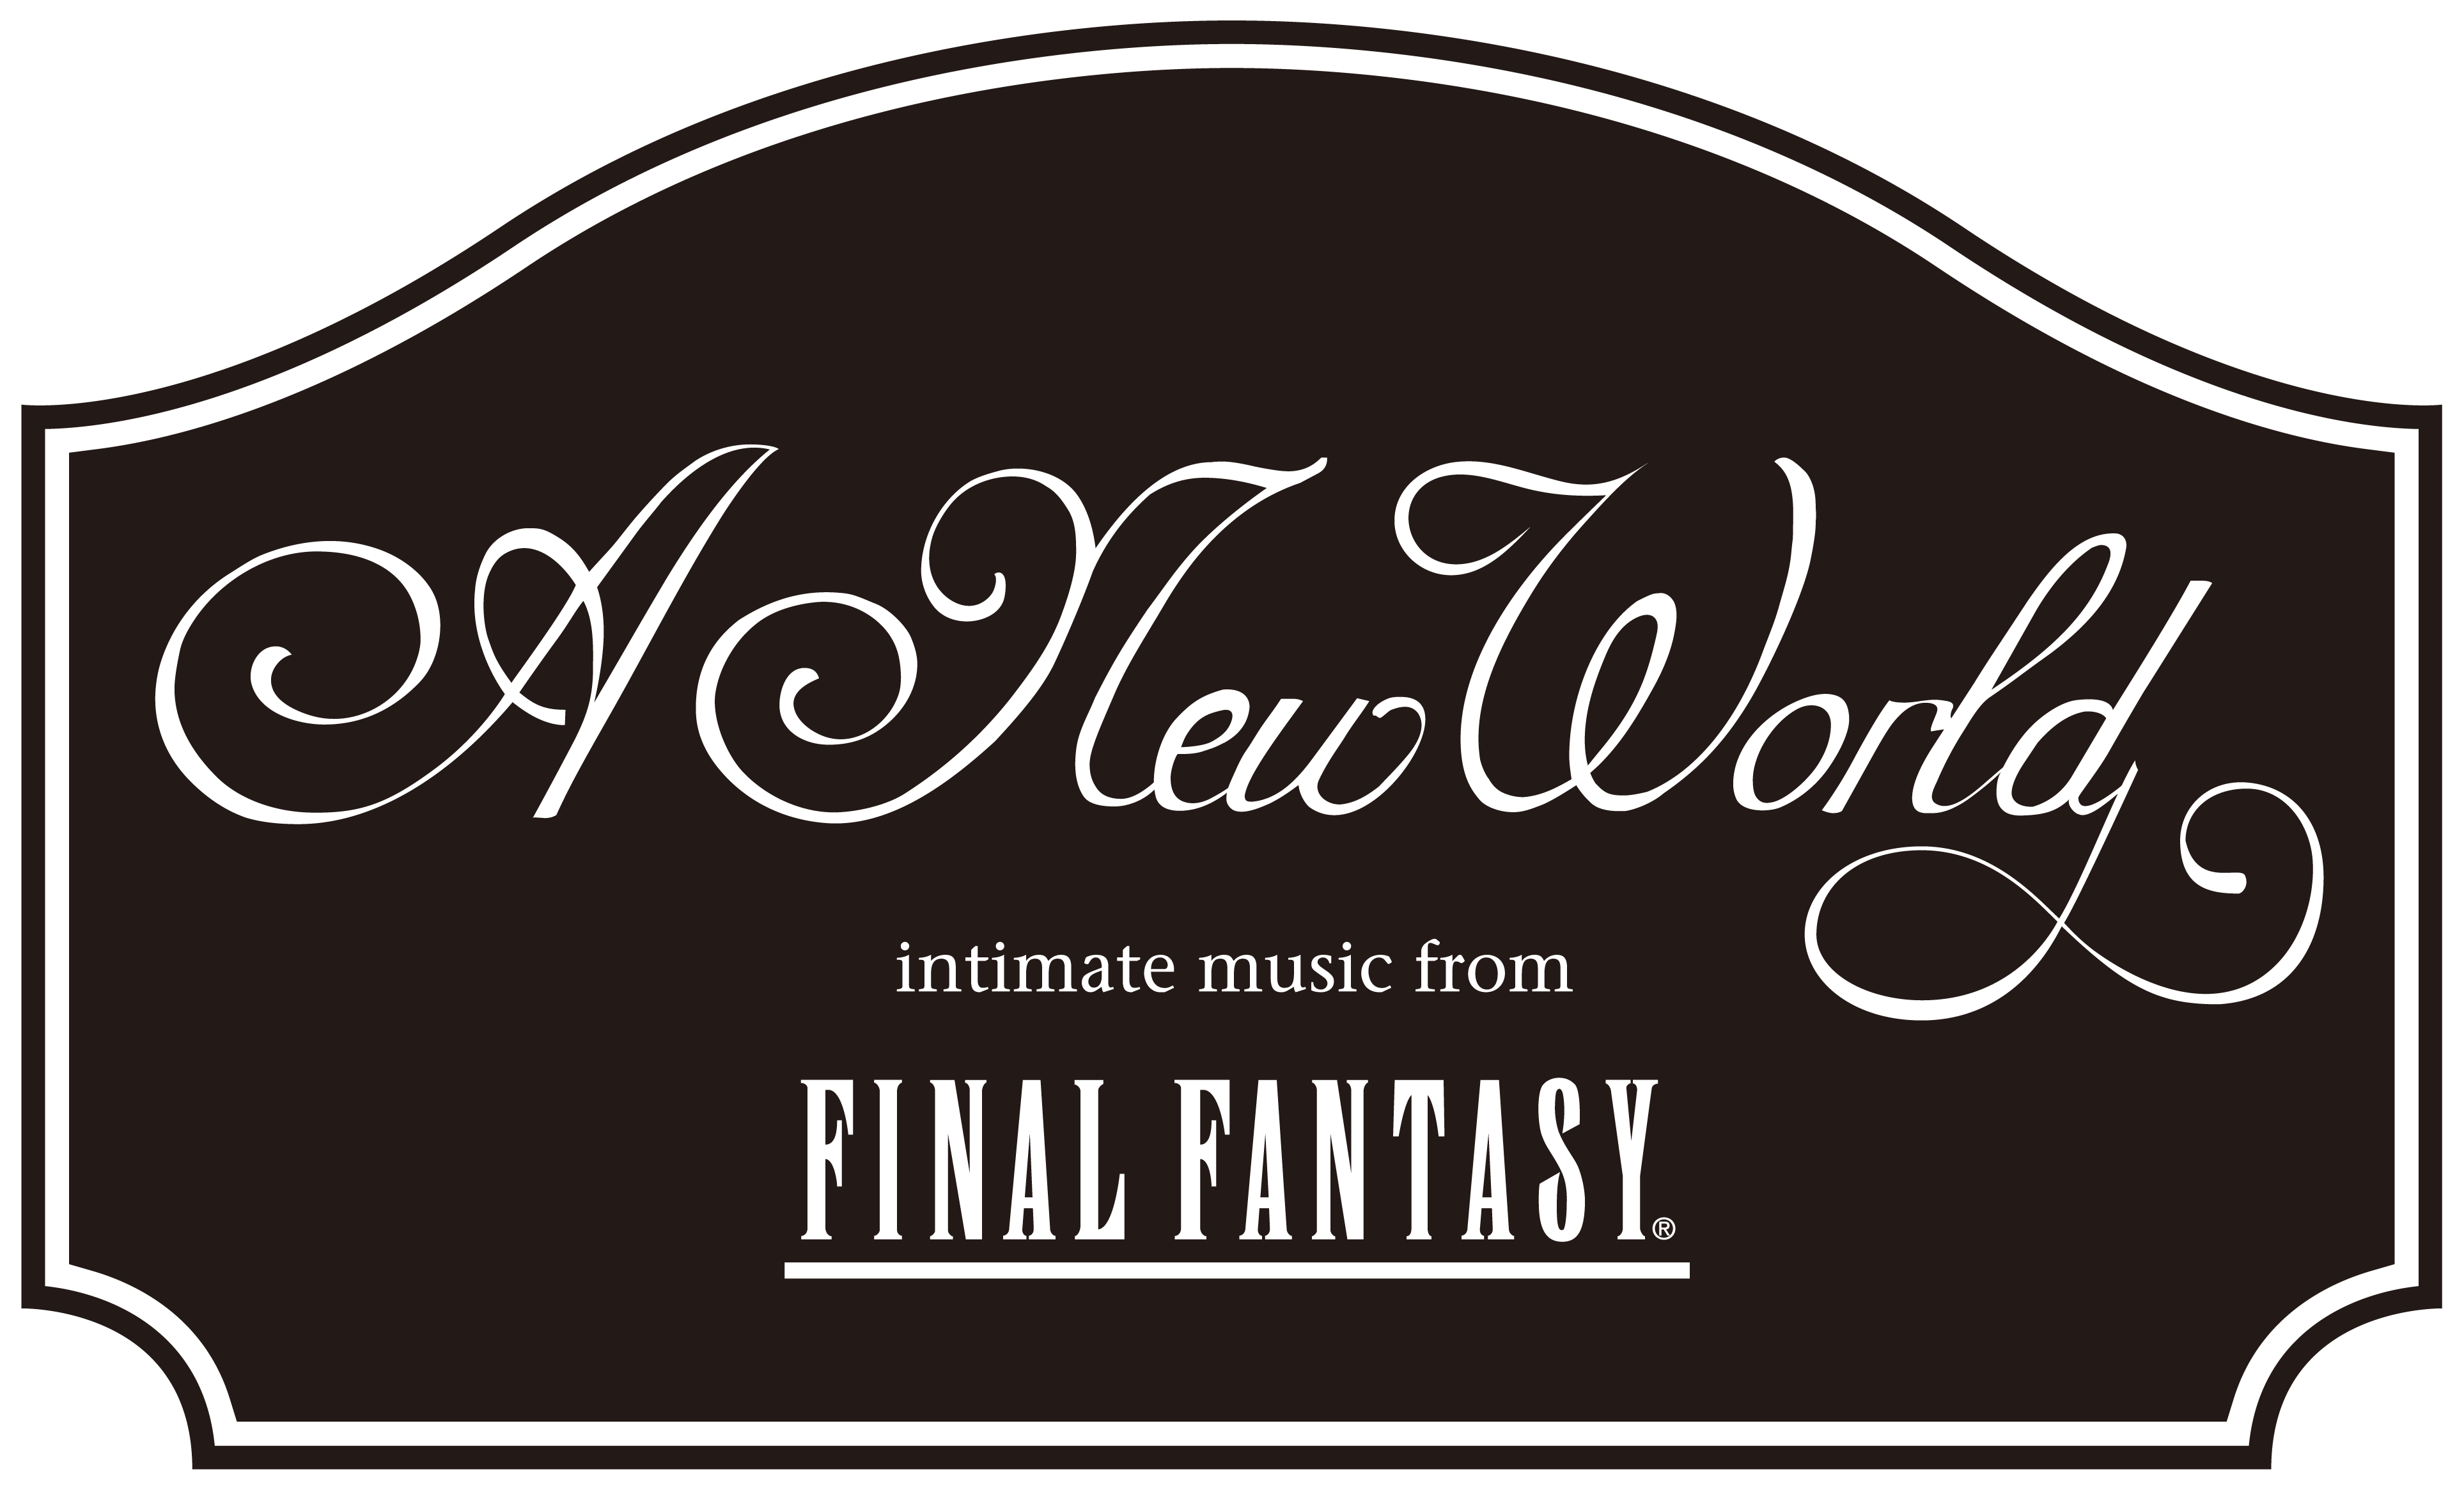 A New Day World Performs Final Fantasy Anime Frontier Fort Worth, Texas Anime Convention